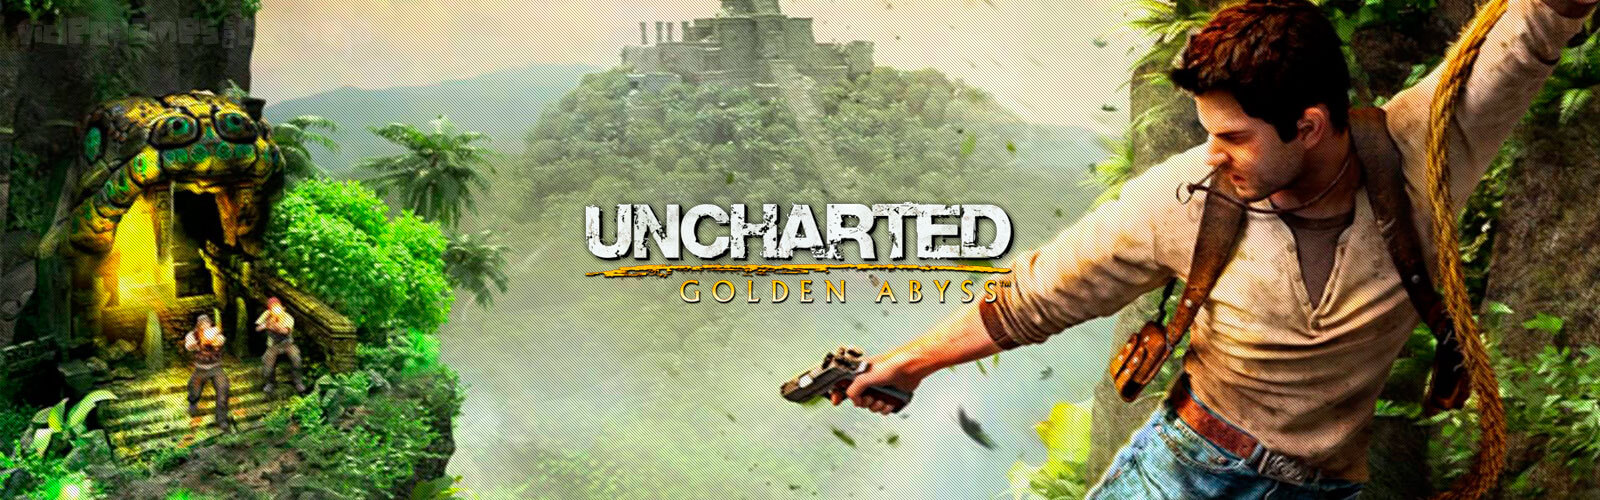 Análise - Uncharted: Golden Abyss (PS Vita) Cover